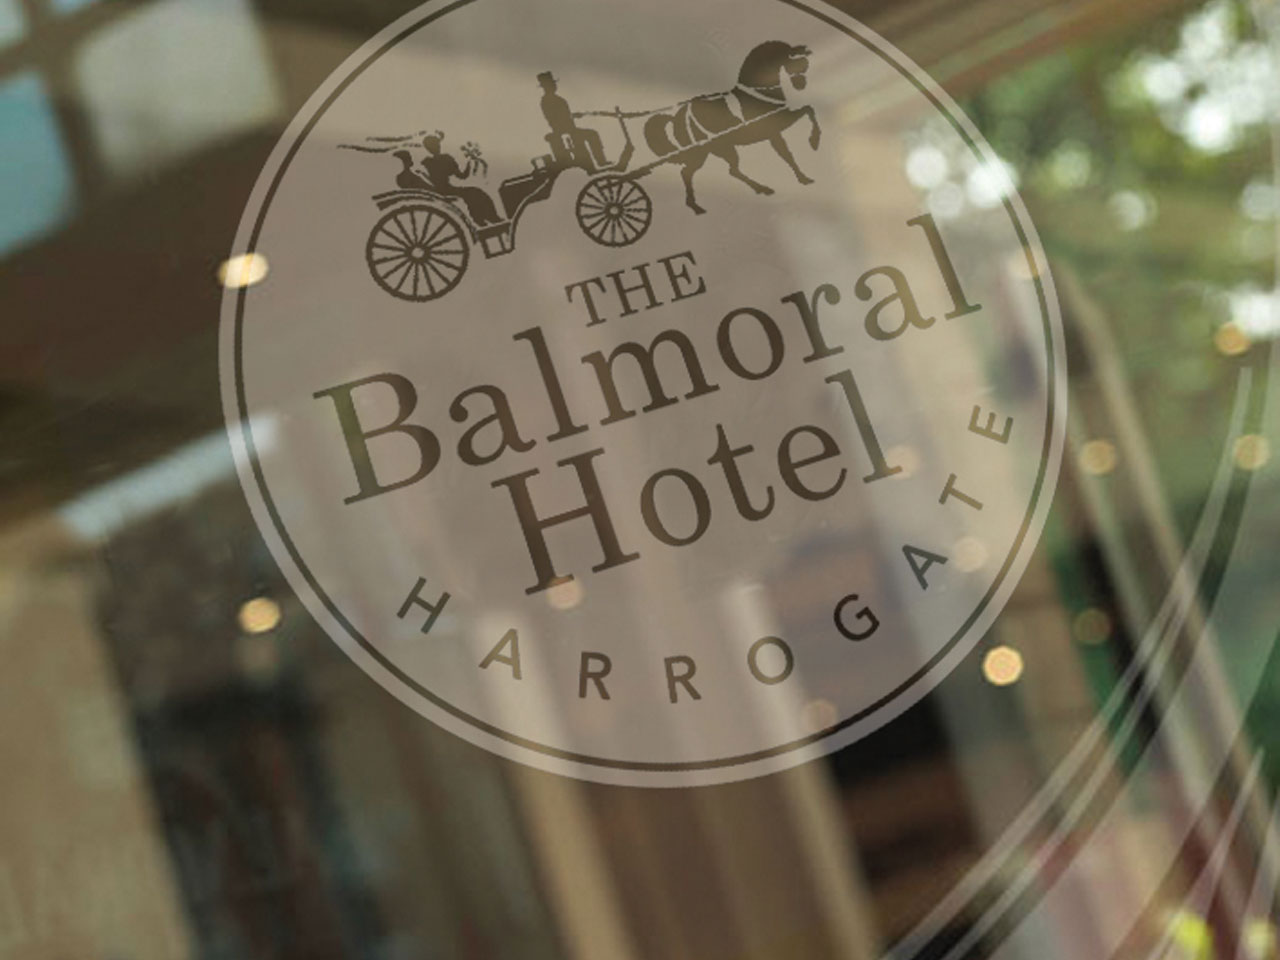 balmoral hotel marketing image